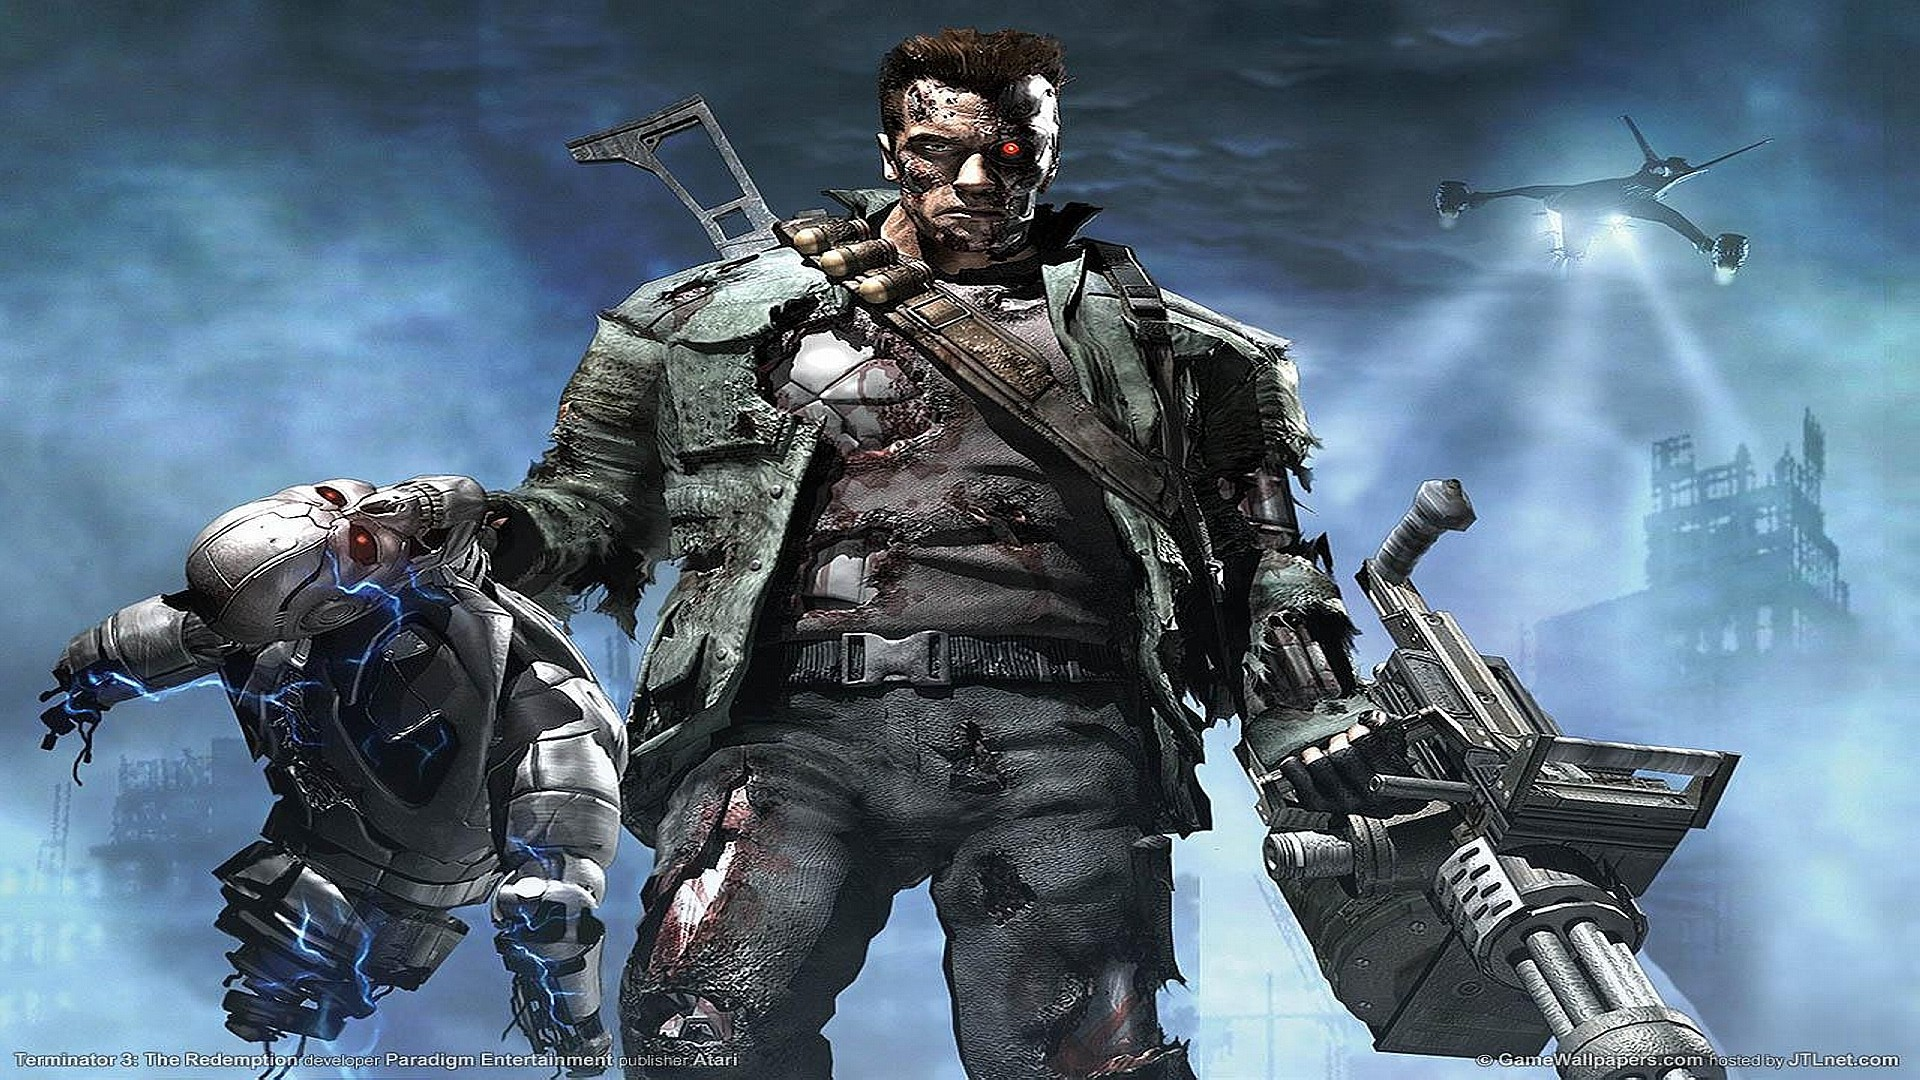 3d Wallpaper Ios Terminator Console Game Wallpapers Hd Wallpapers Id 1595